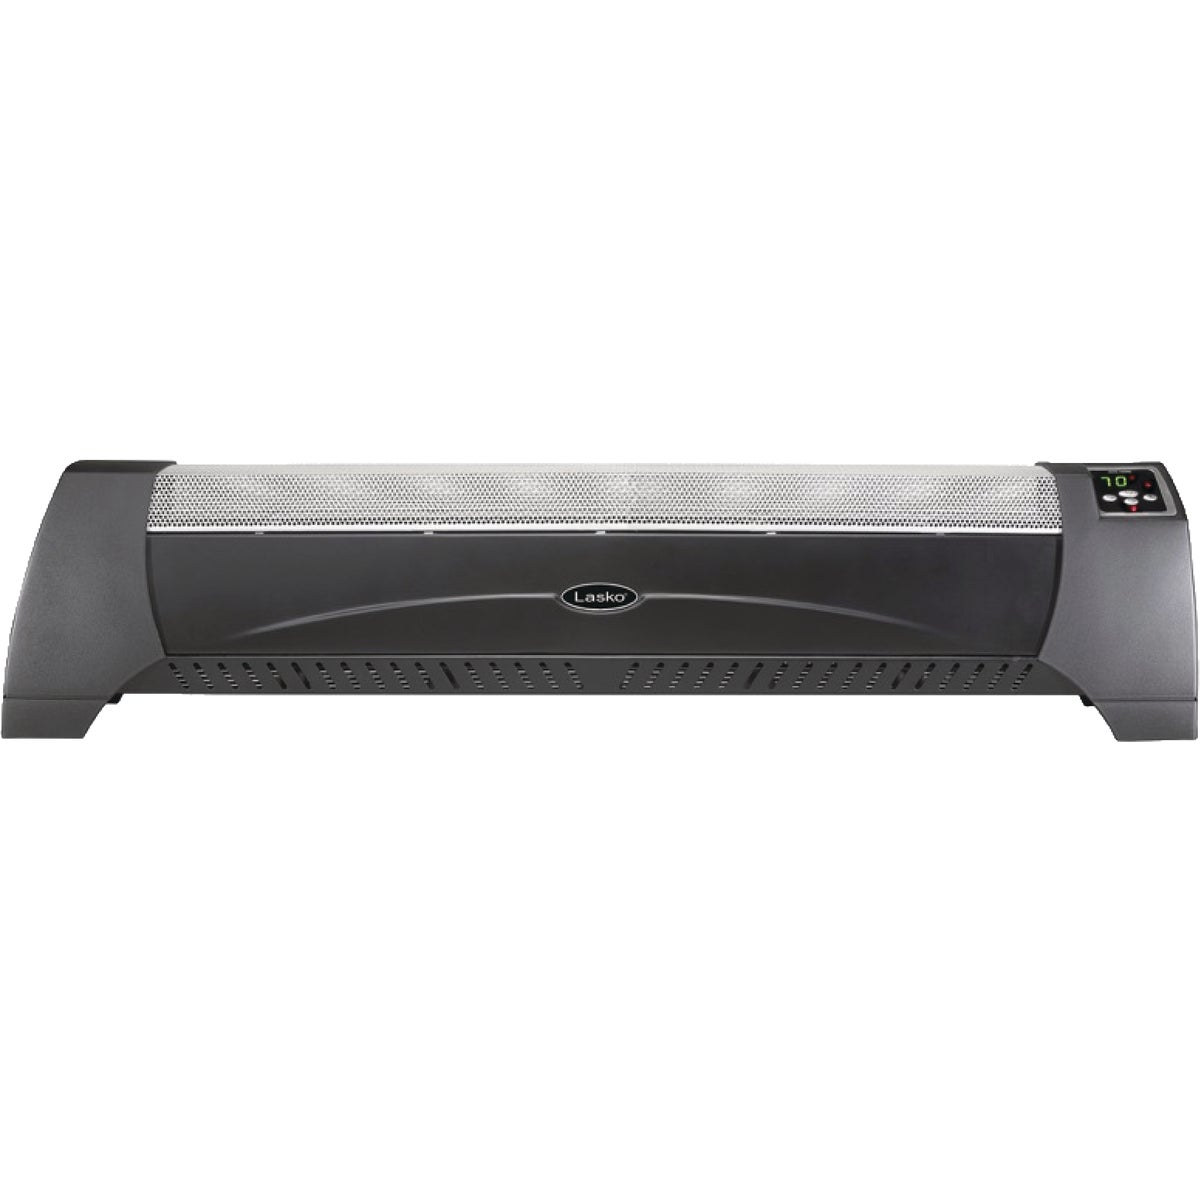 BASEBOARD HEATER - 5622 by Lasko Prod Inc